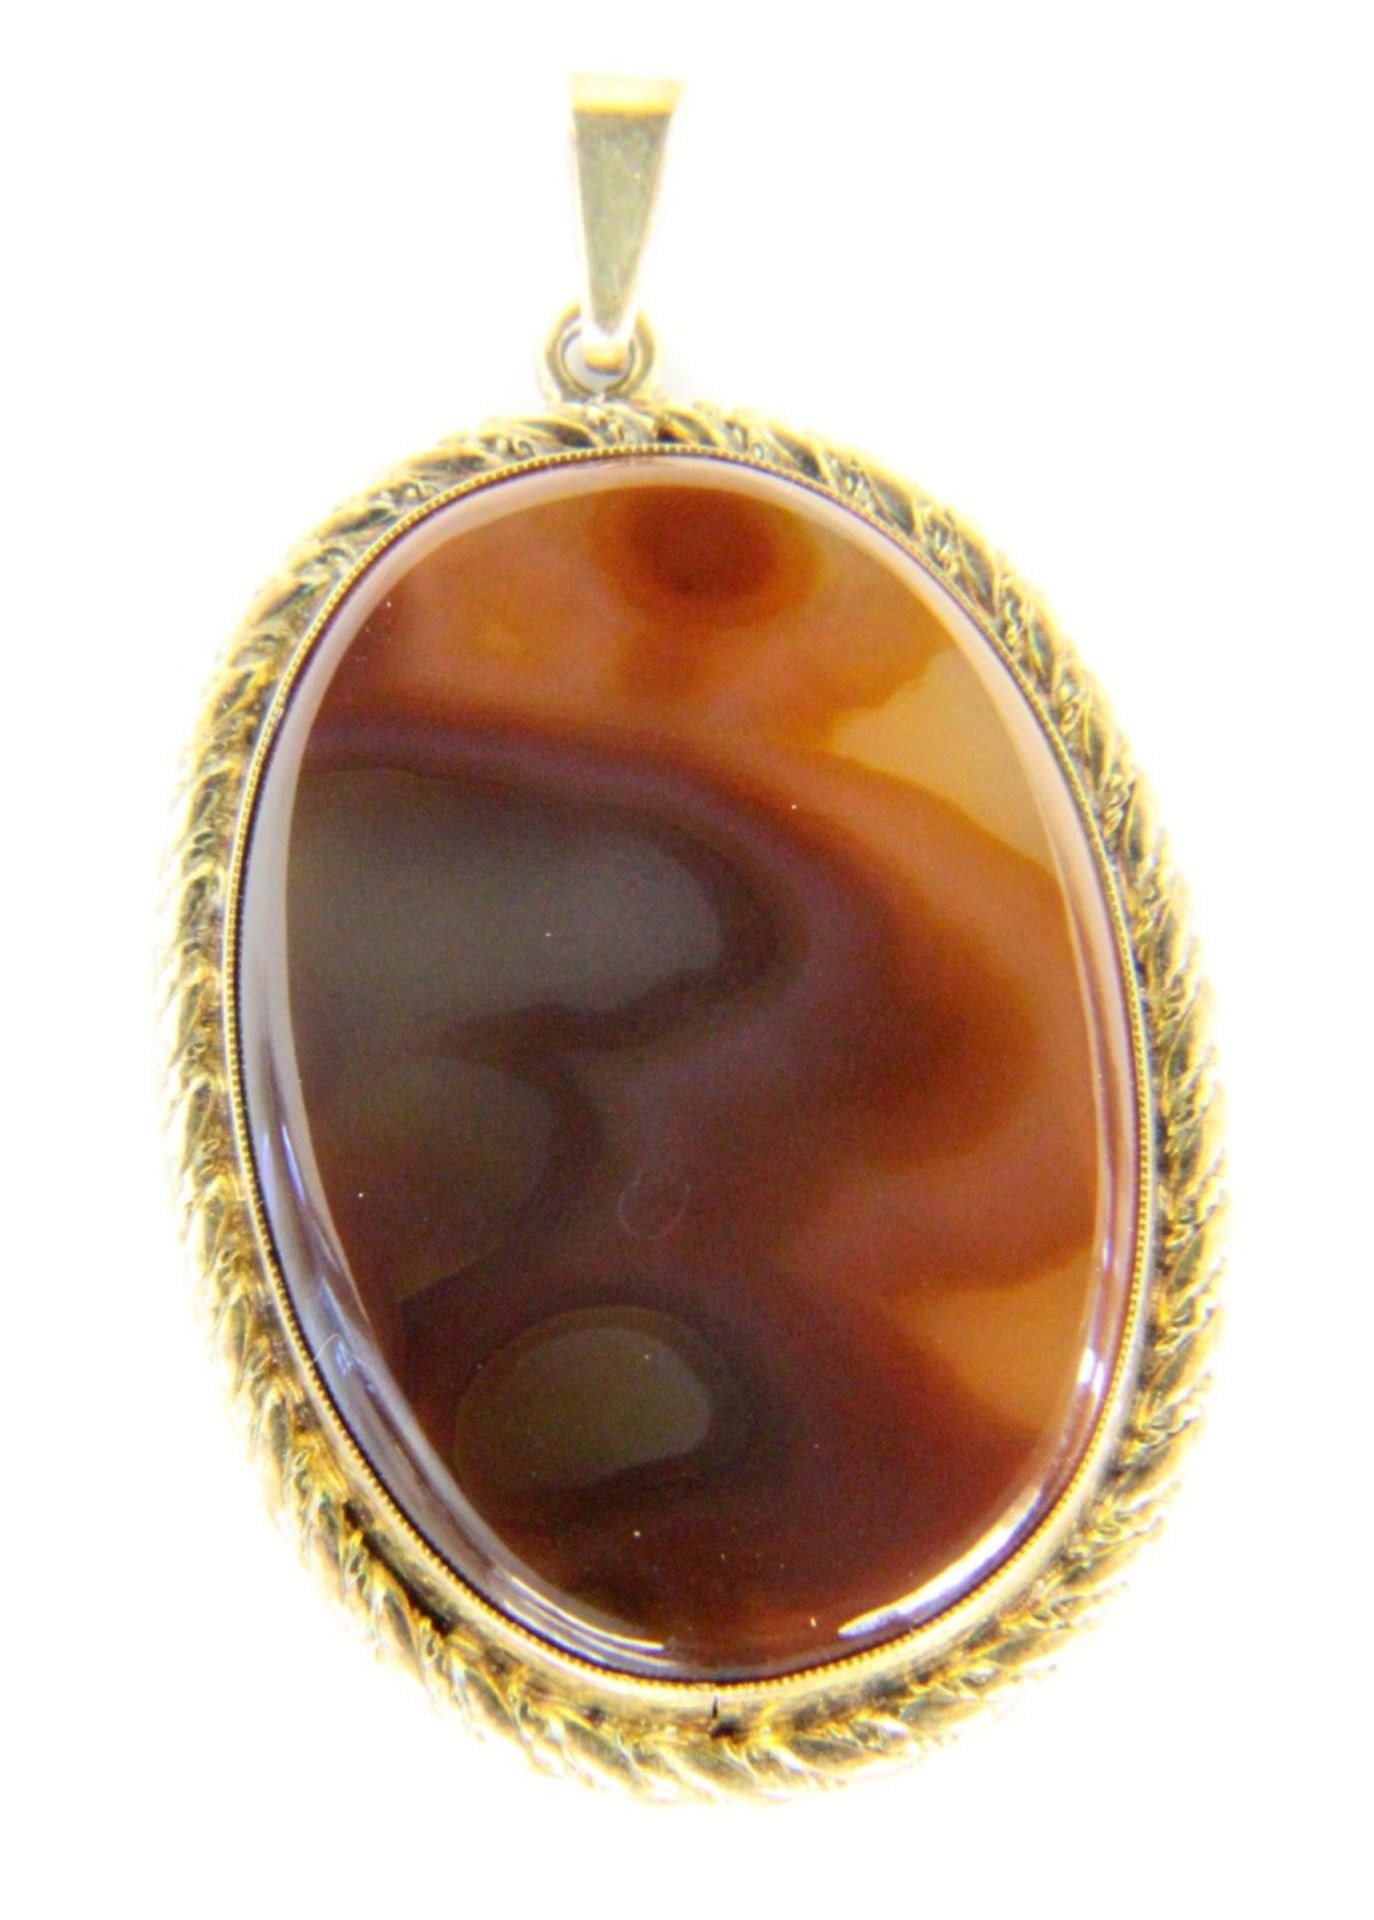 ANHÄNGER MIT ACHATSilber vergoldet. 50x30mmA PENDANT WITH AGATE Silver, gold-plated. 50 x 30 mm.